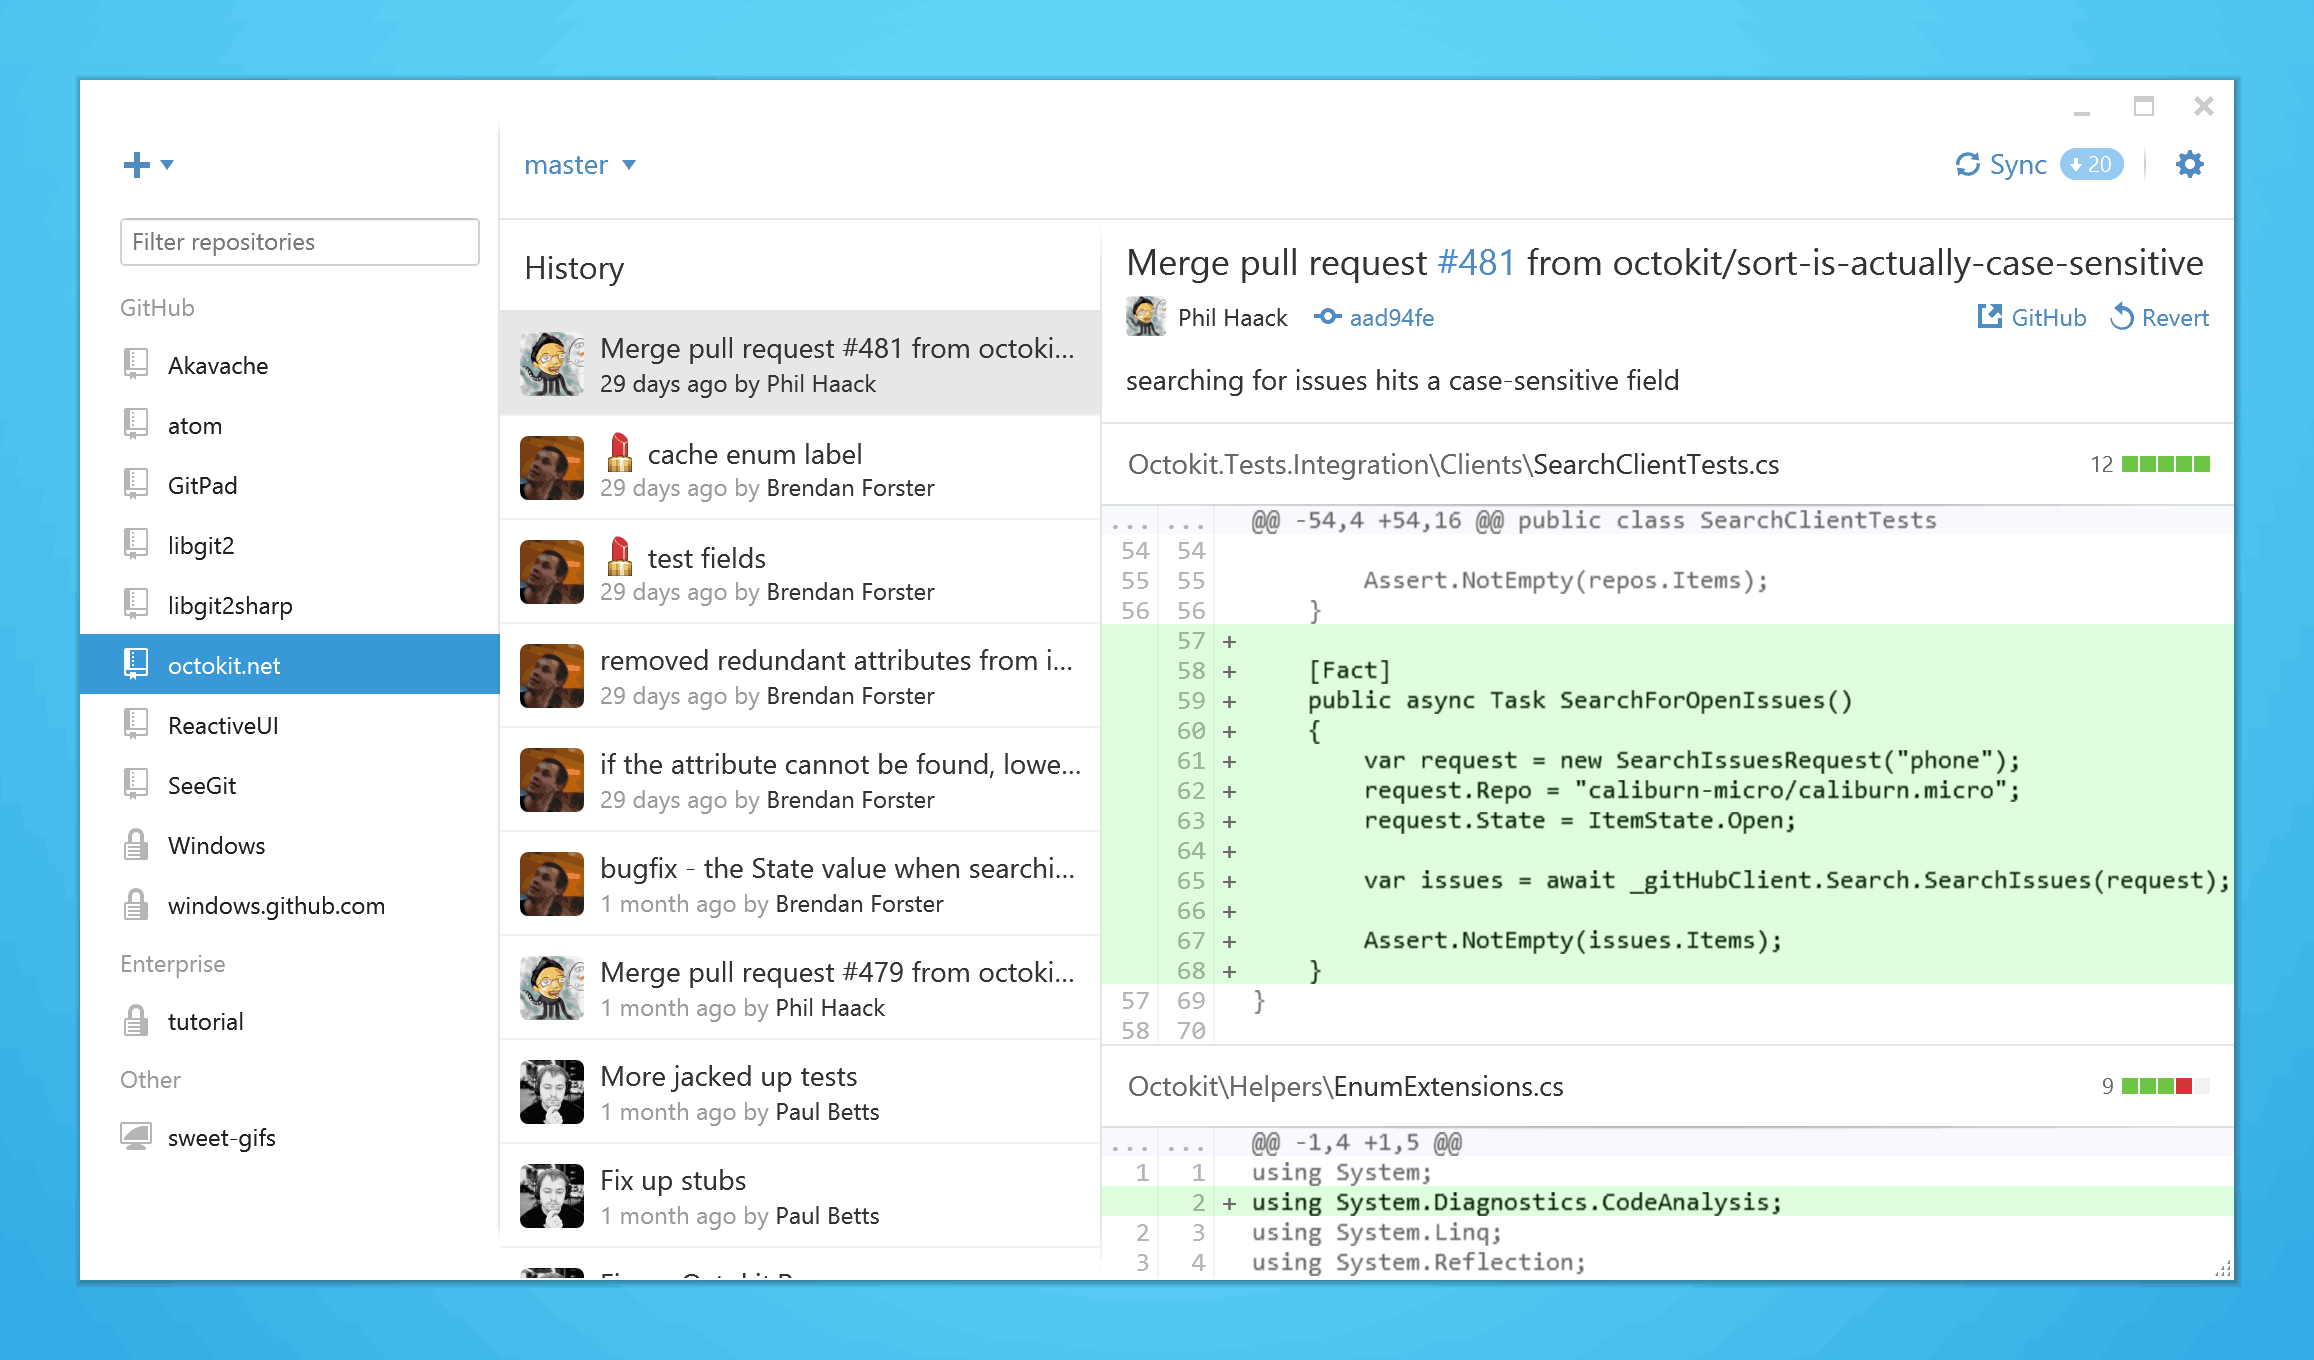 GitHub for Windows 2.0 screenshot GitHub redesigns its Windows app to put your work front and center, adds emoji and gif support